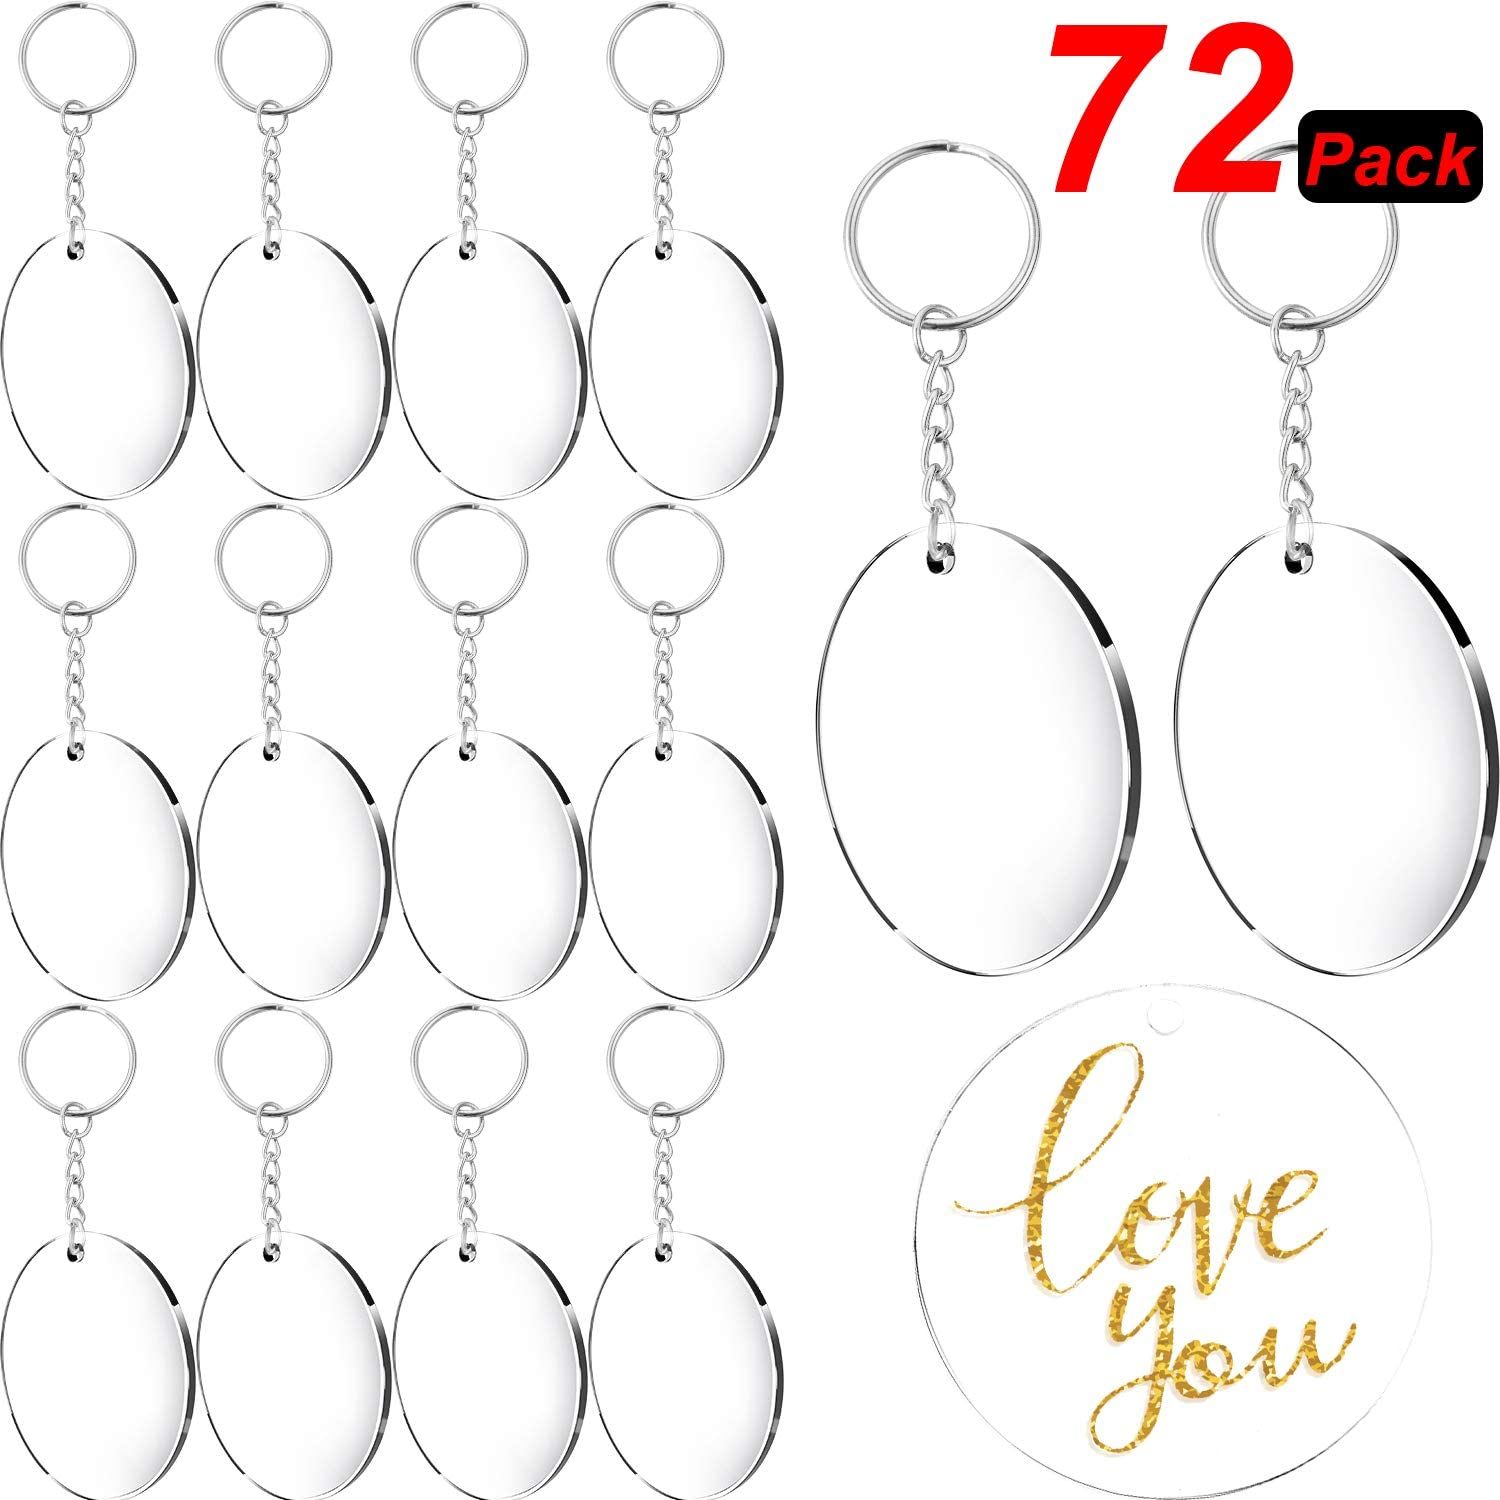 Acrylic Transparent Circle Discs 36 Pieces Circle Key Chains Clear Round Acrylic Keychain Blanks and Tassel Pendant Keyring for DIY Projects and Crafts